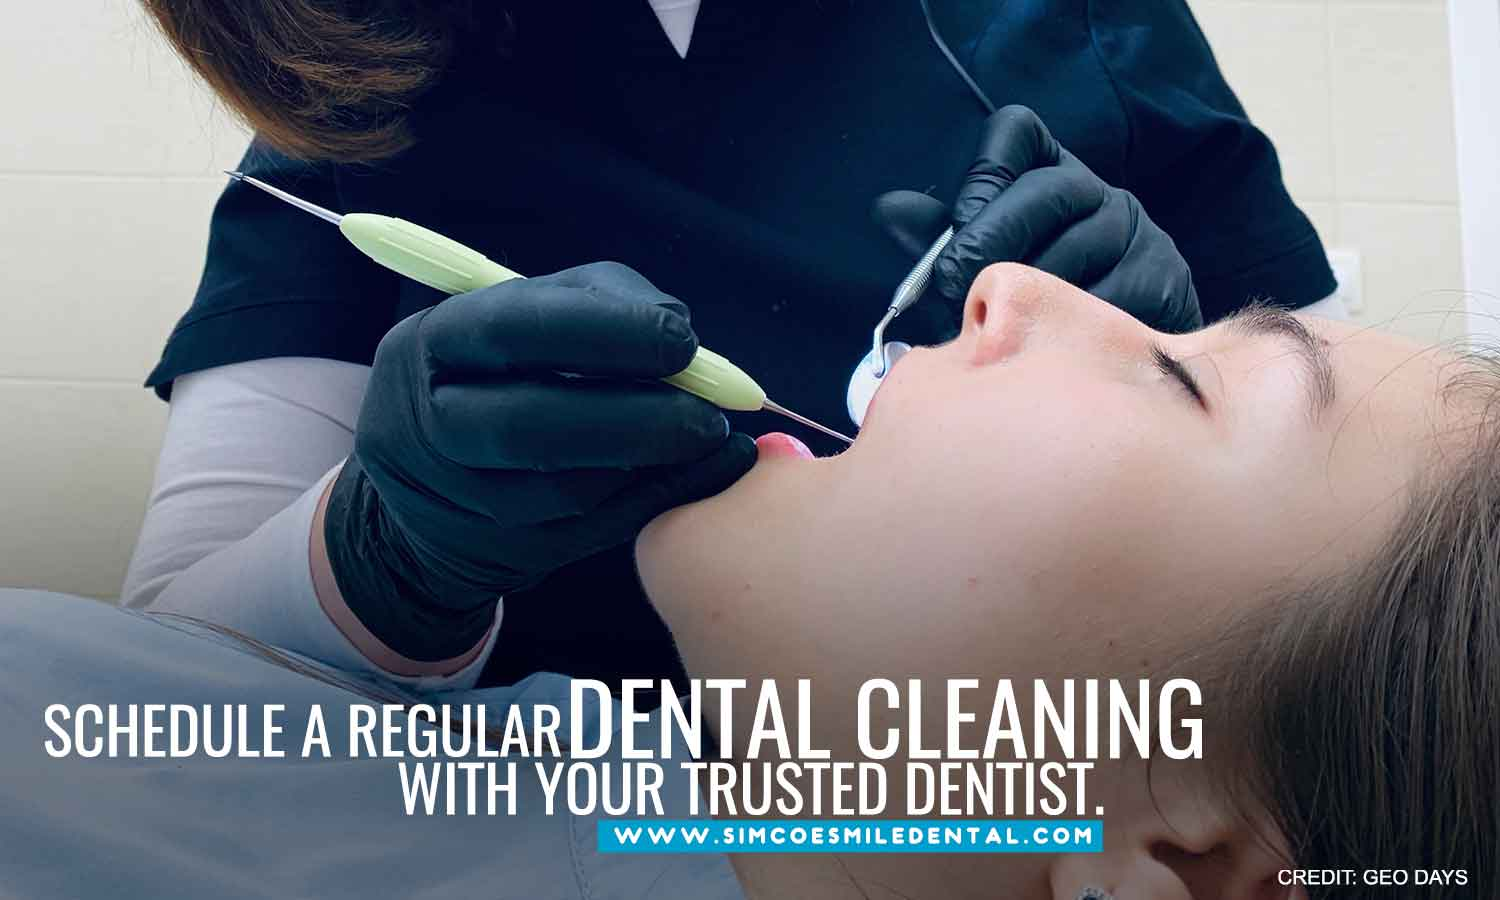 Schedule-a-regular-dental-cleaning-with-your-trusted-dentist How to Help Your Toothbrush Take Care of Your Teeth